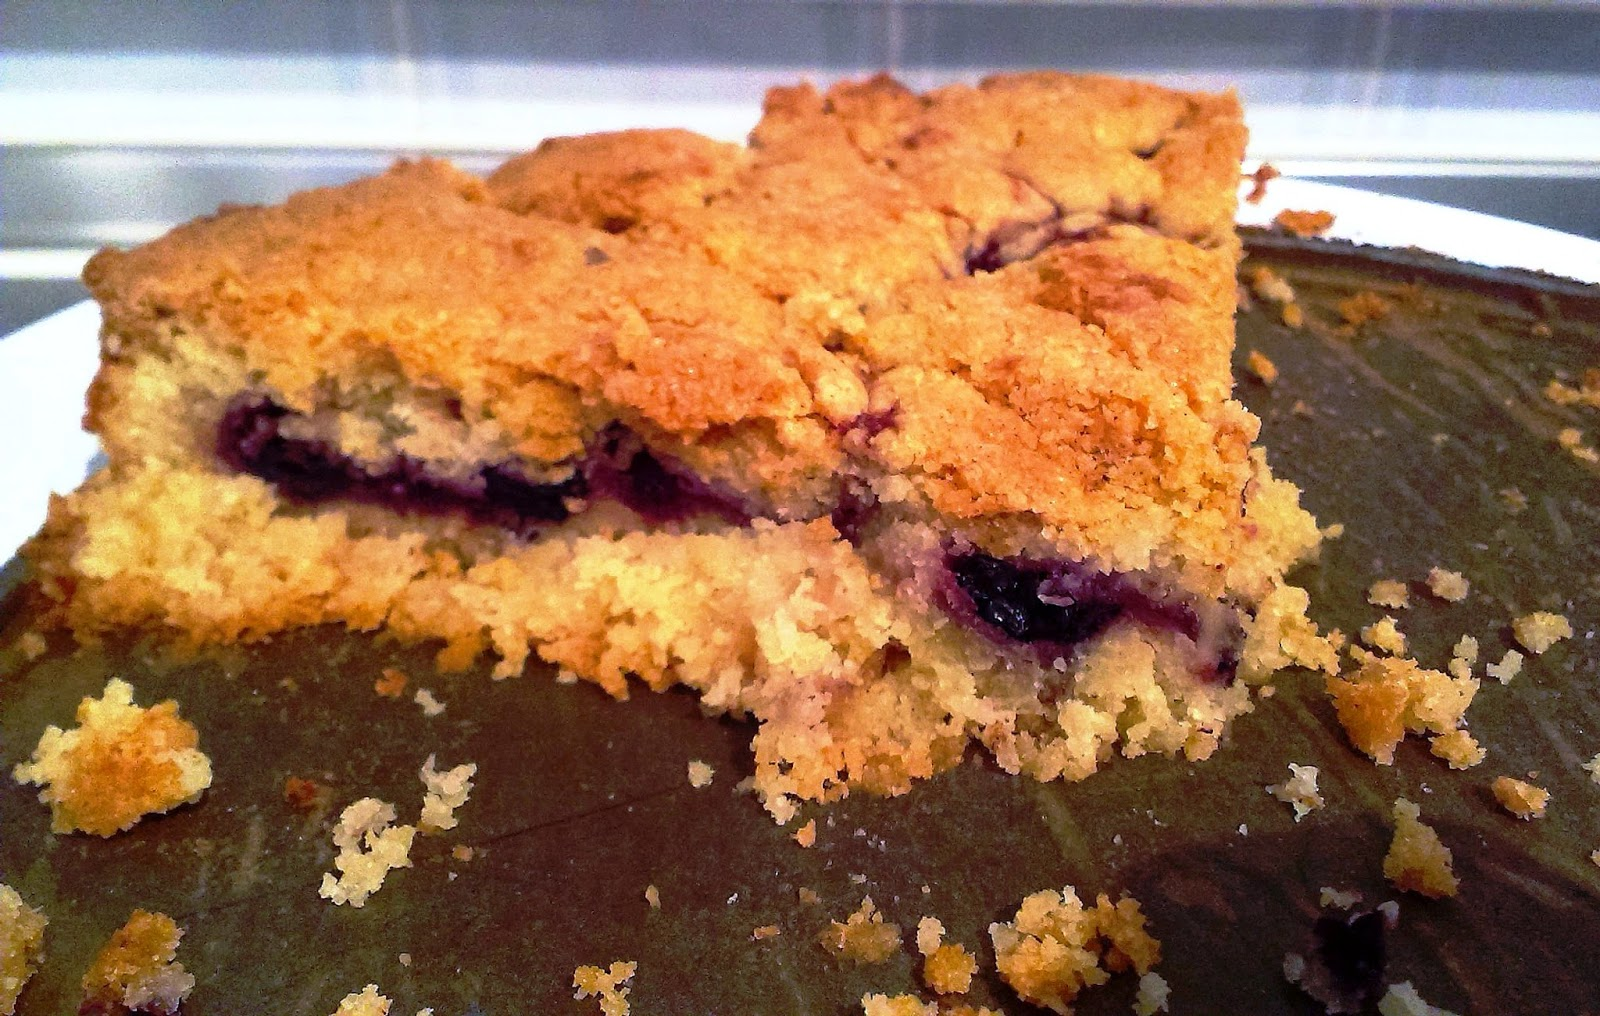 Blackberry and cinnamon cake